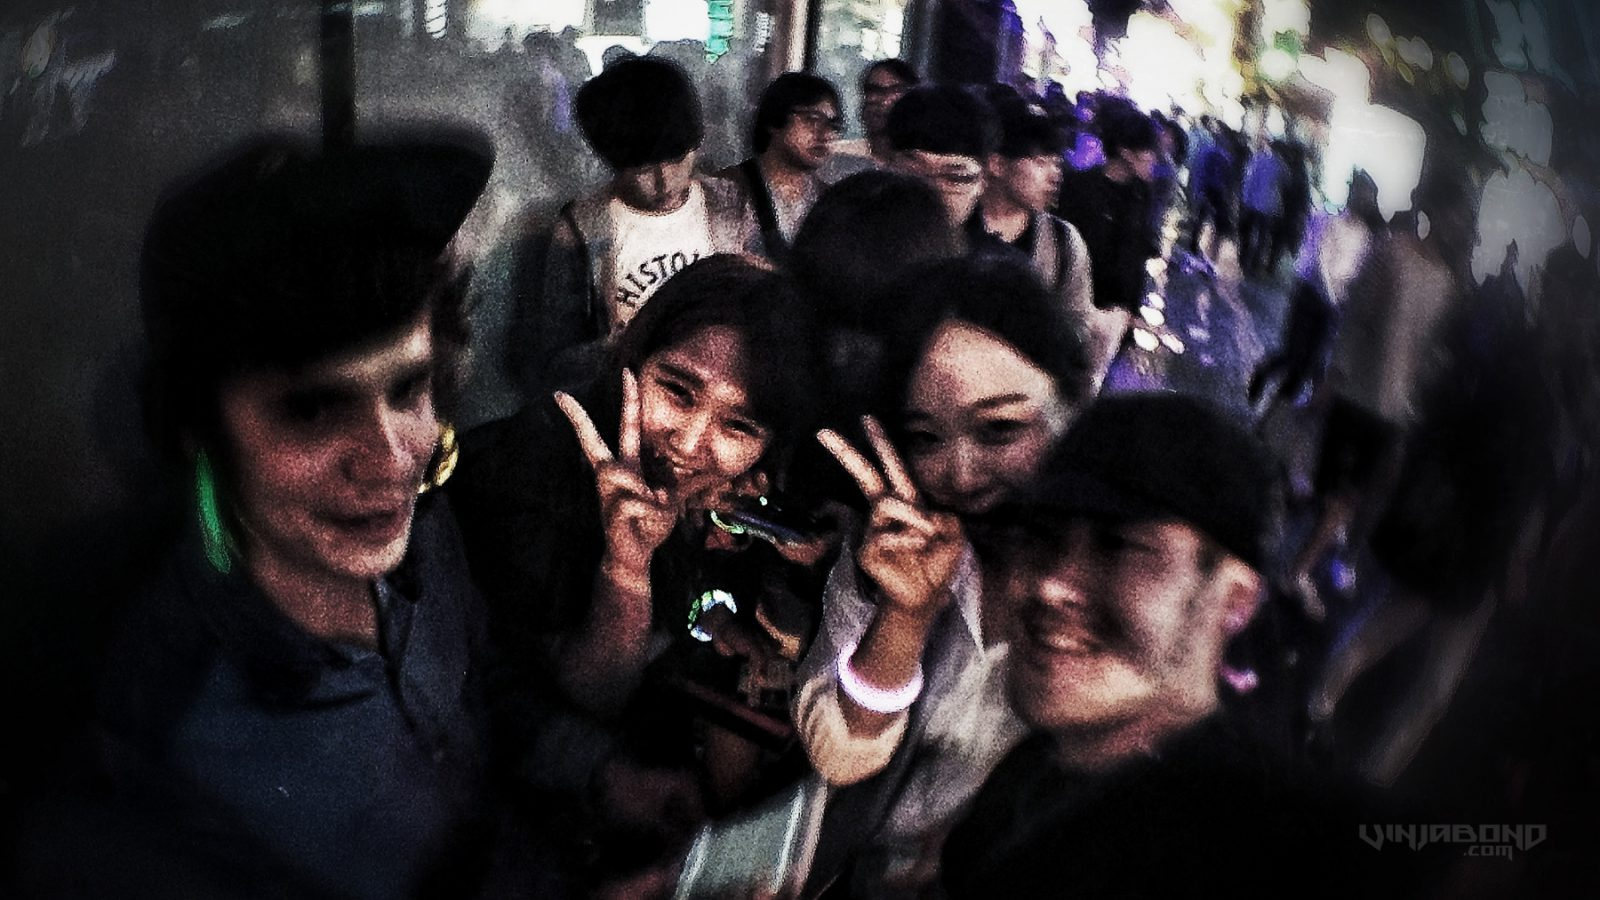 - Partying on The Streets of Hongdae w/ The Local Girls - VINJABOND